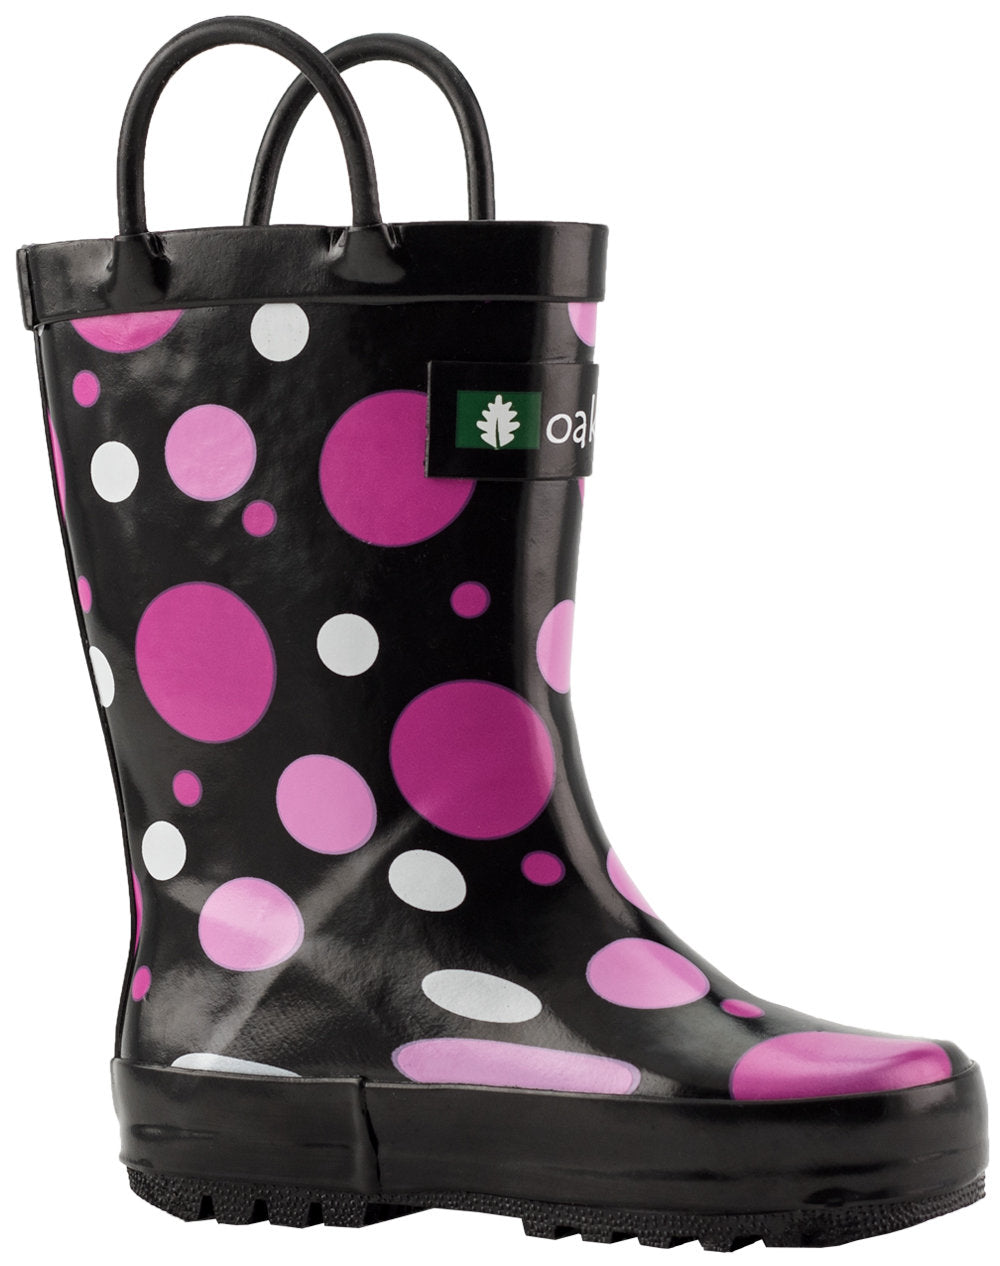 Polka Dots Loop Handle Rubber Rain Boots